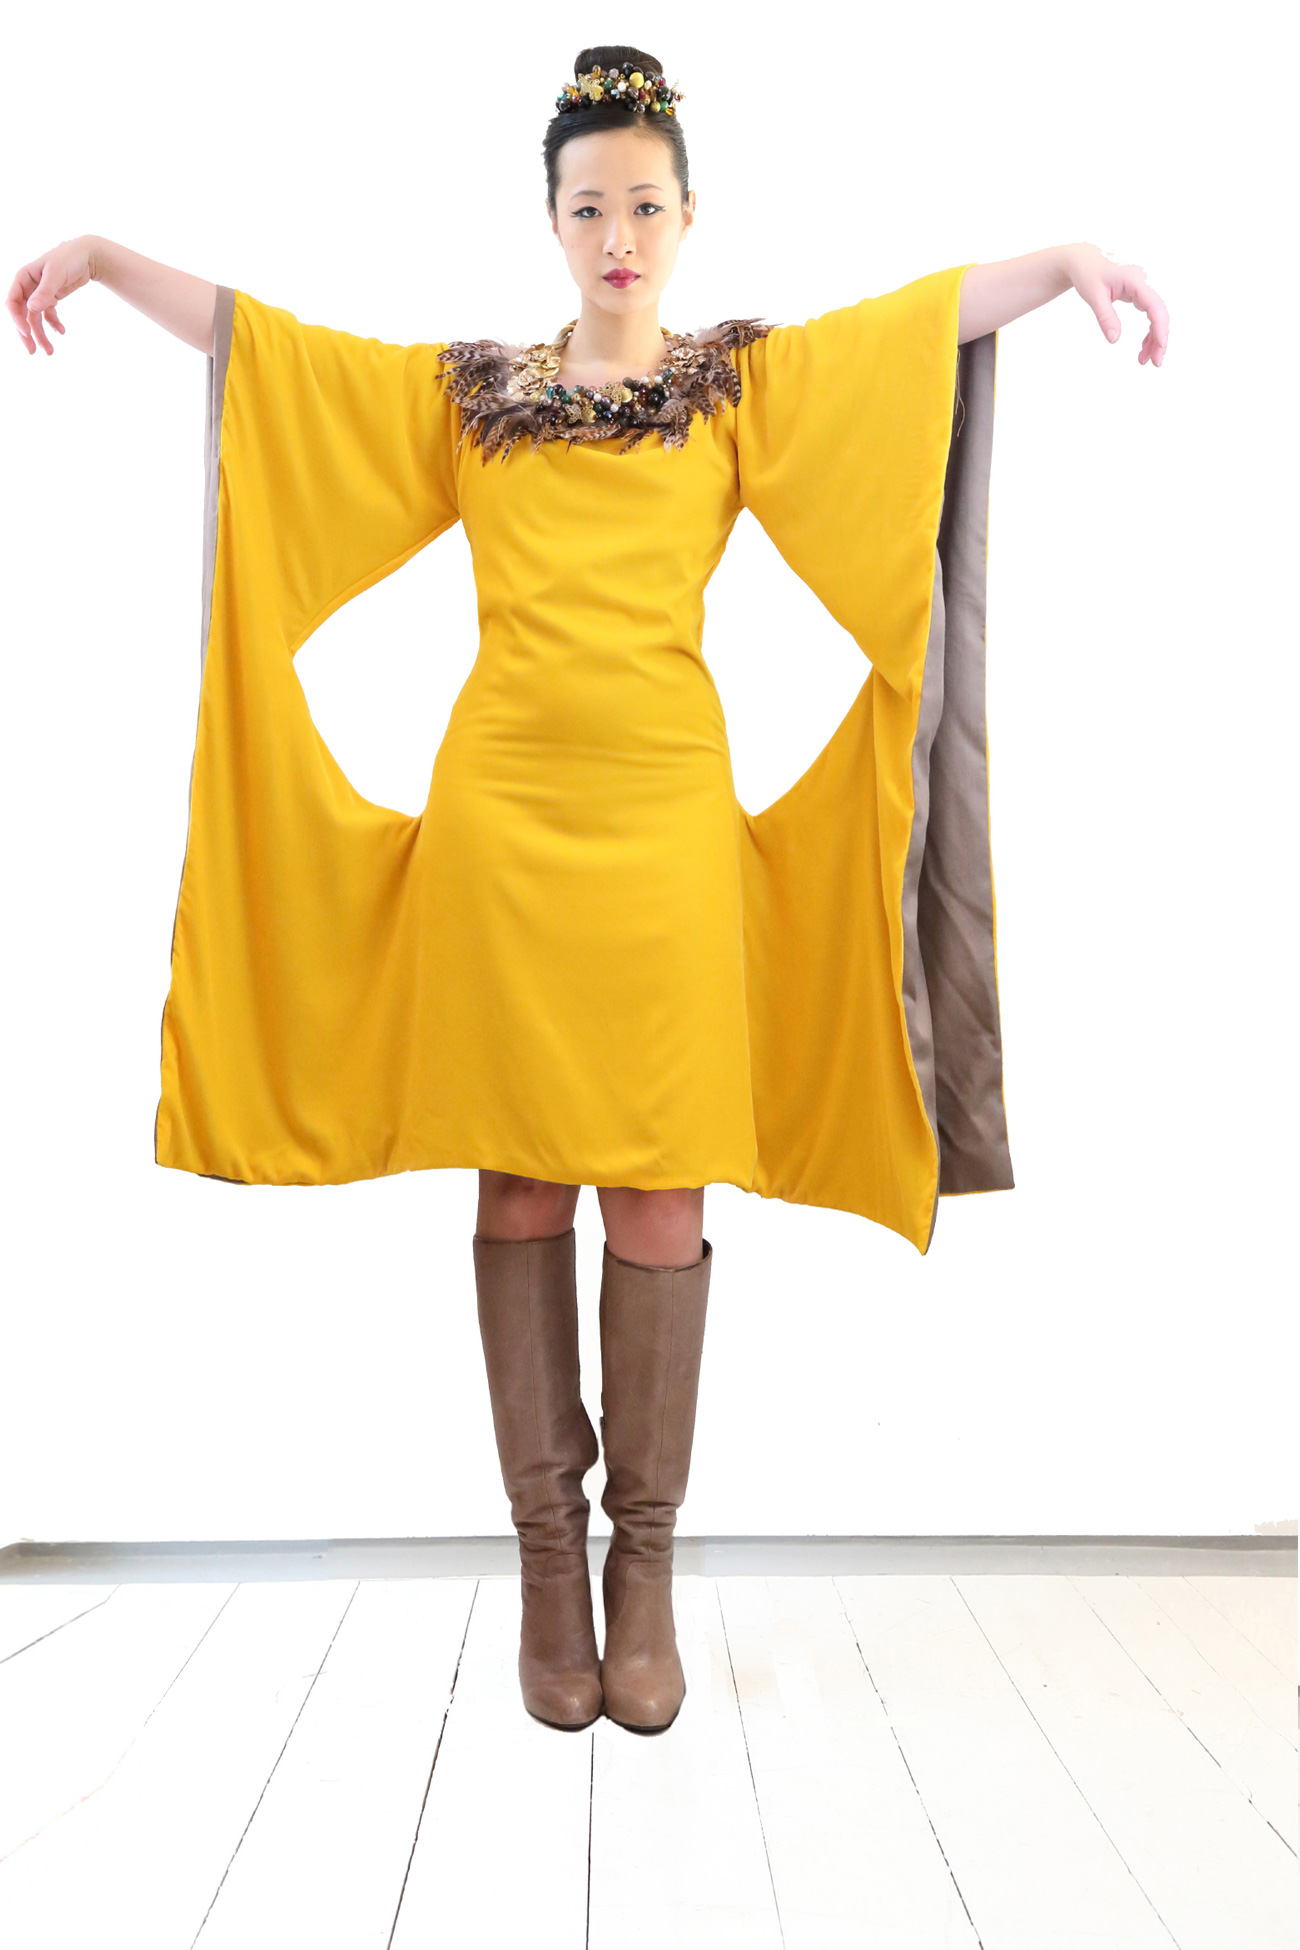 c26805f852 Yellow Velvet Dress #15